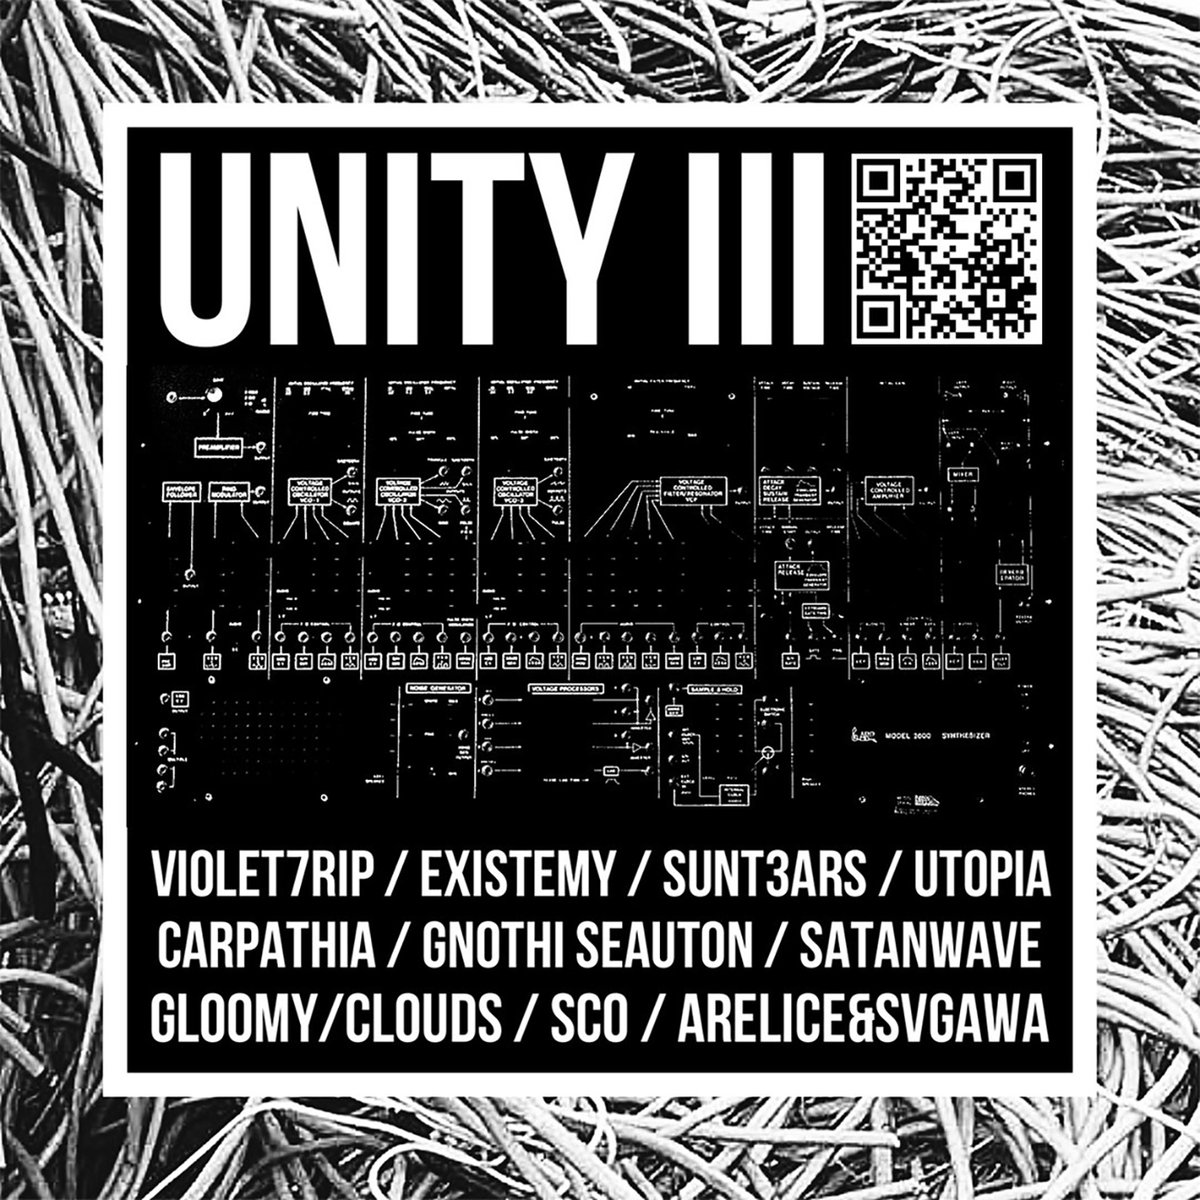 Utopia - Soda @ 'Various Artists - UNITY III' album (electronic, experimental)